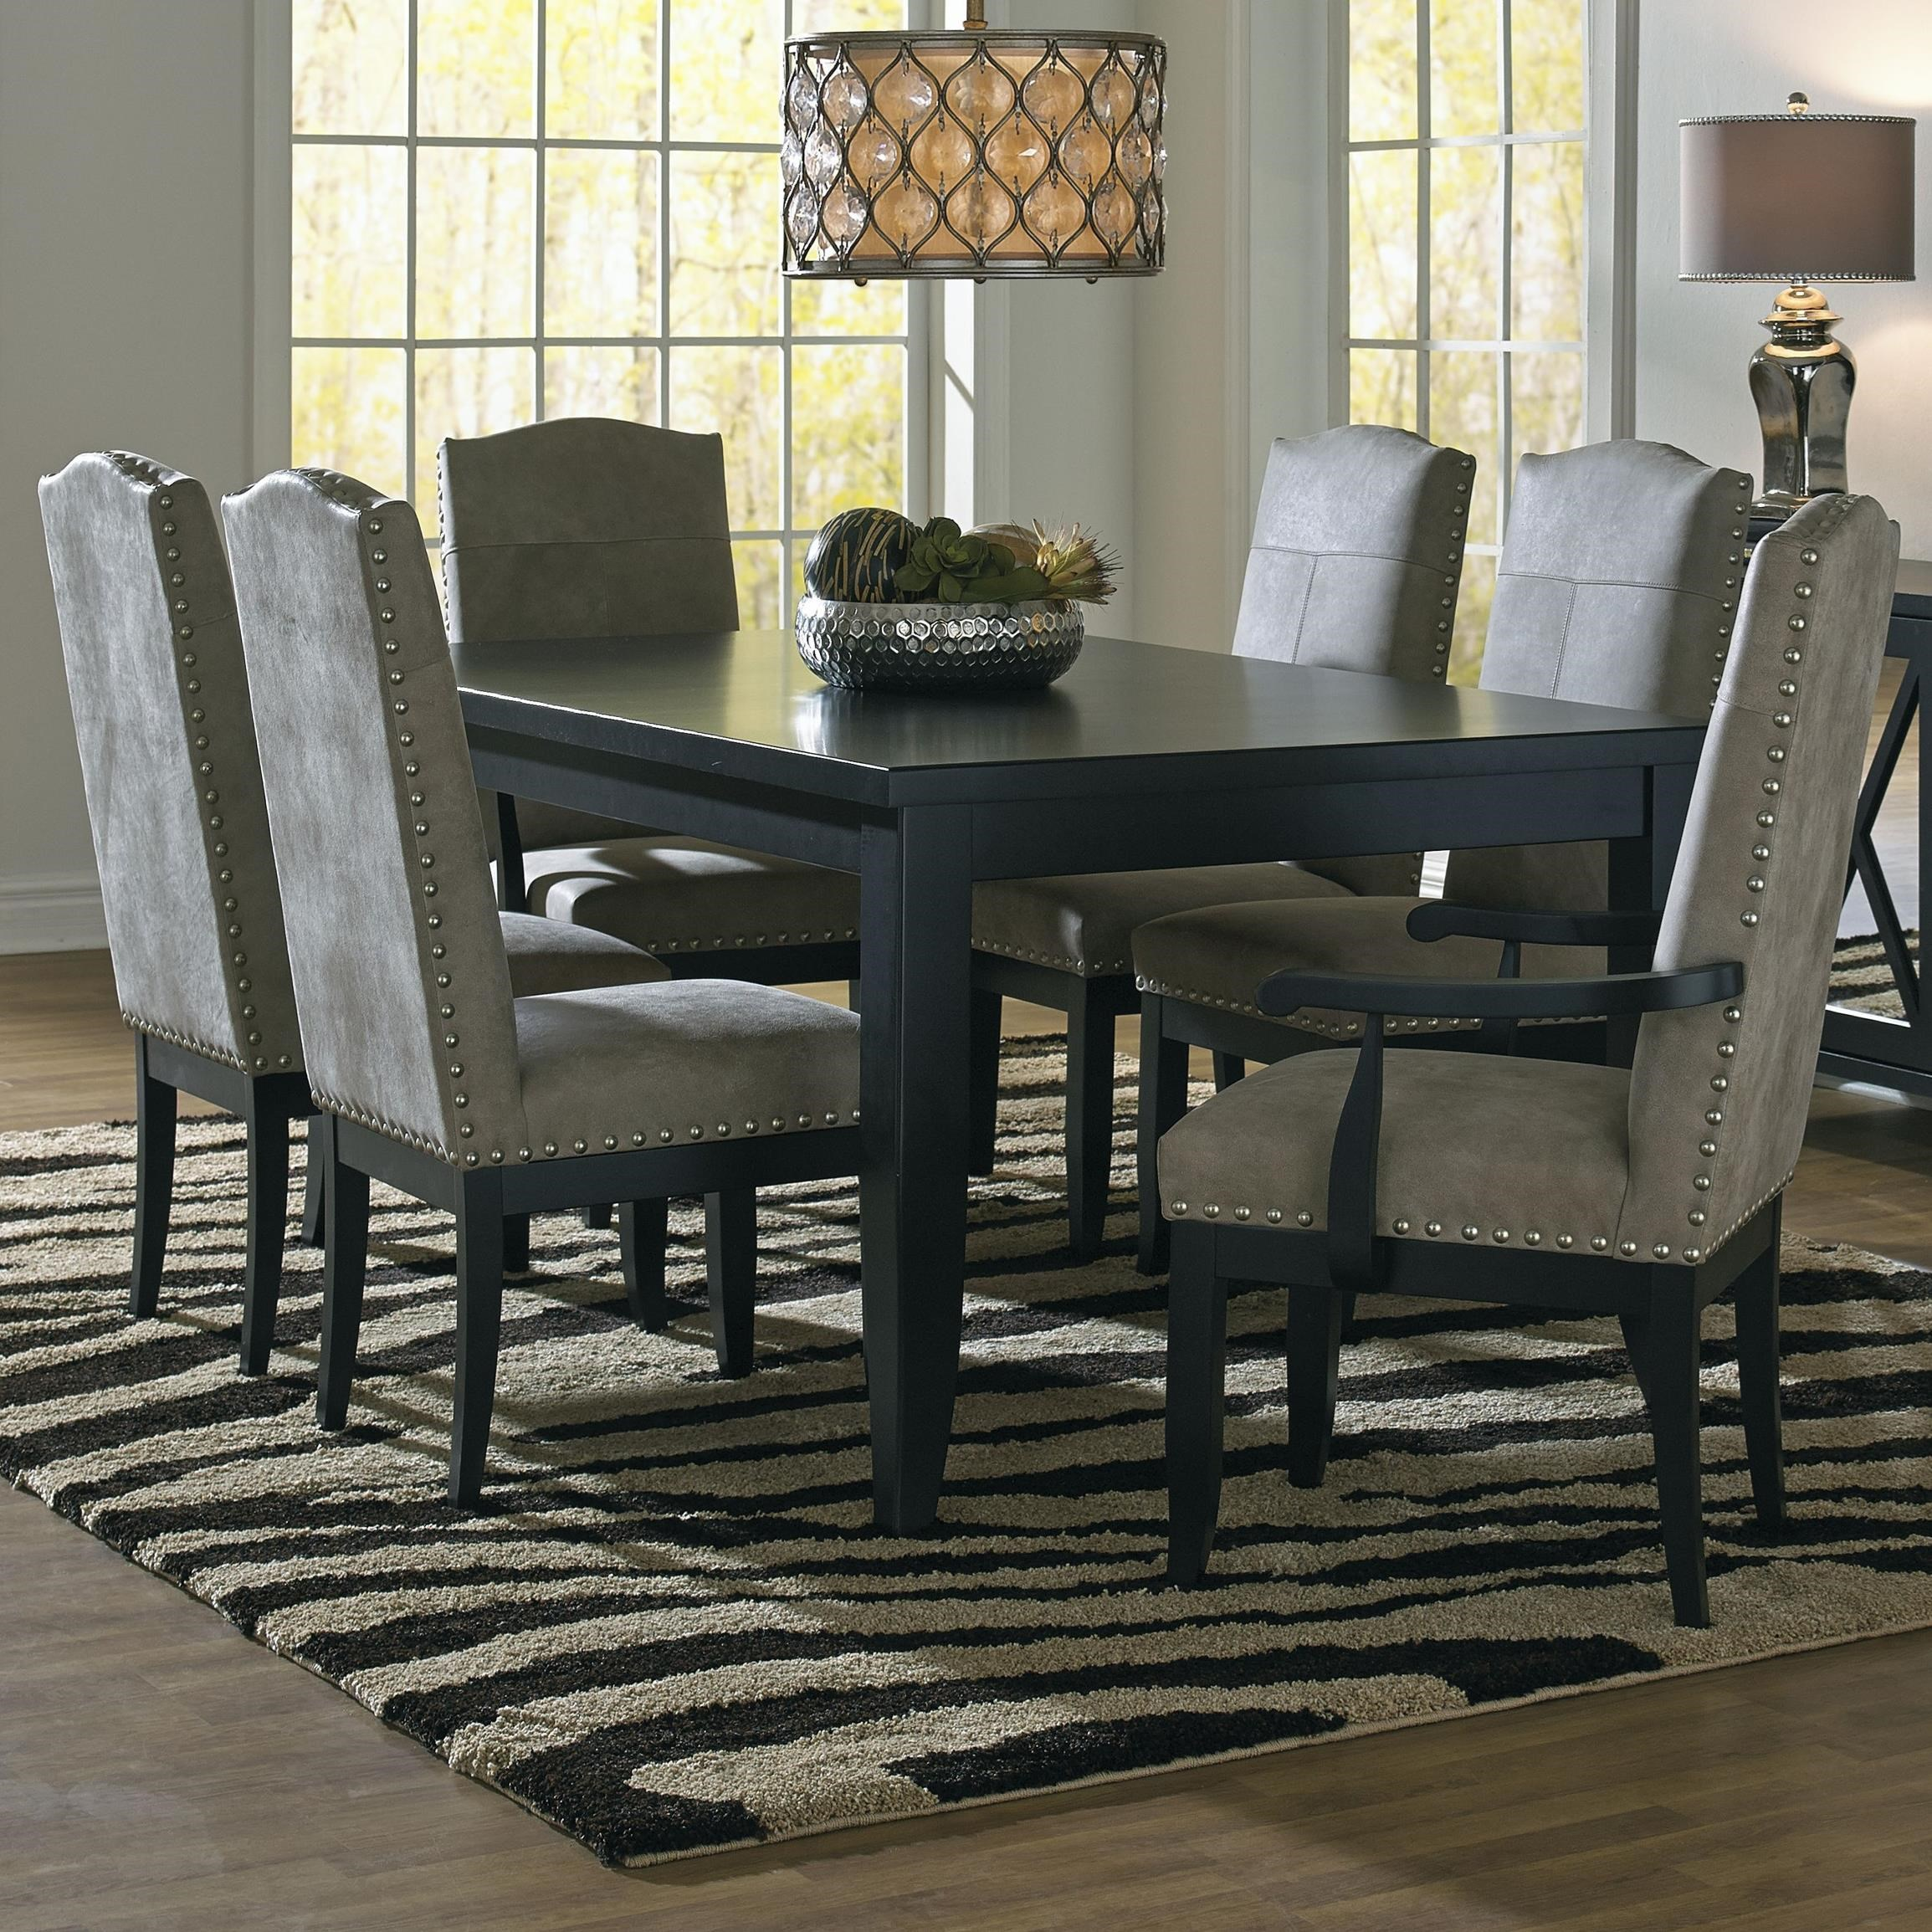 Custom Dining Customizable Rectangular Dining Table Set by Canadel at Dinette Depot